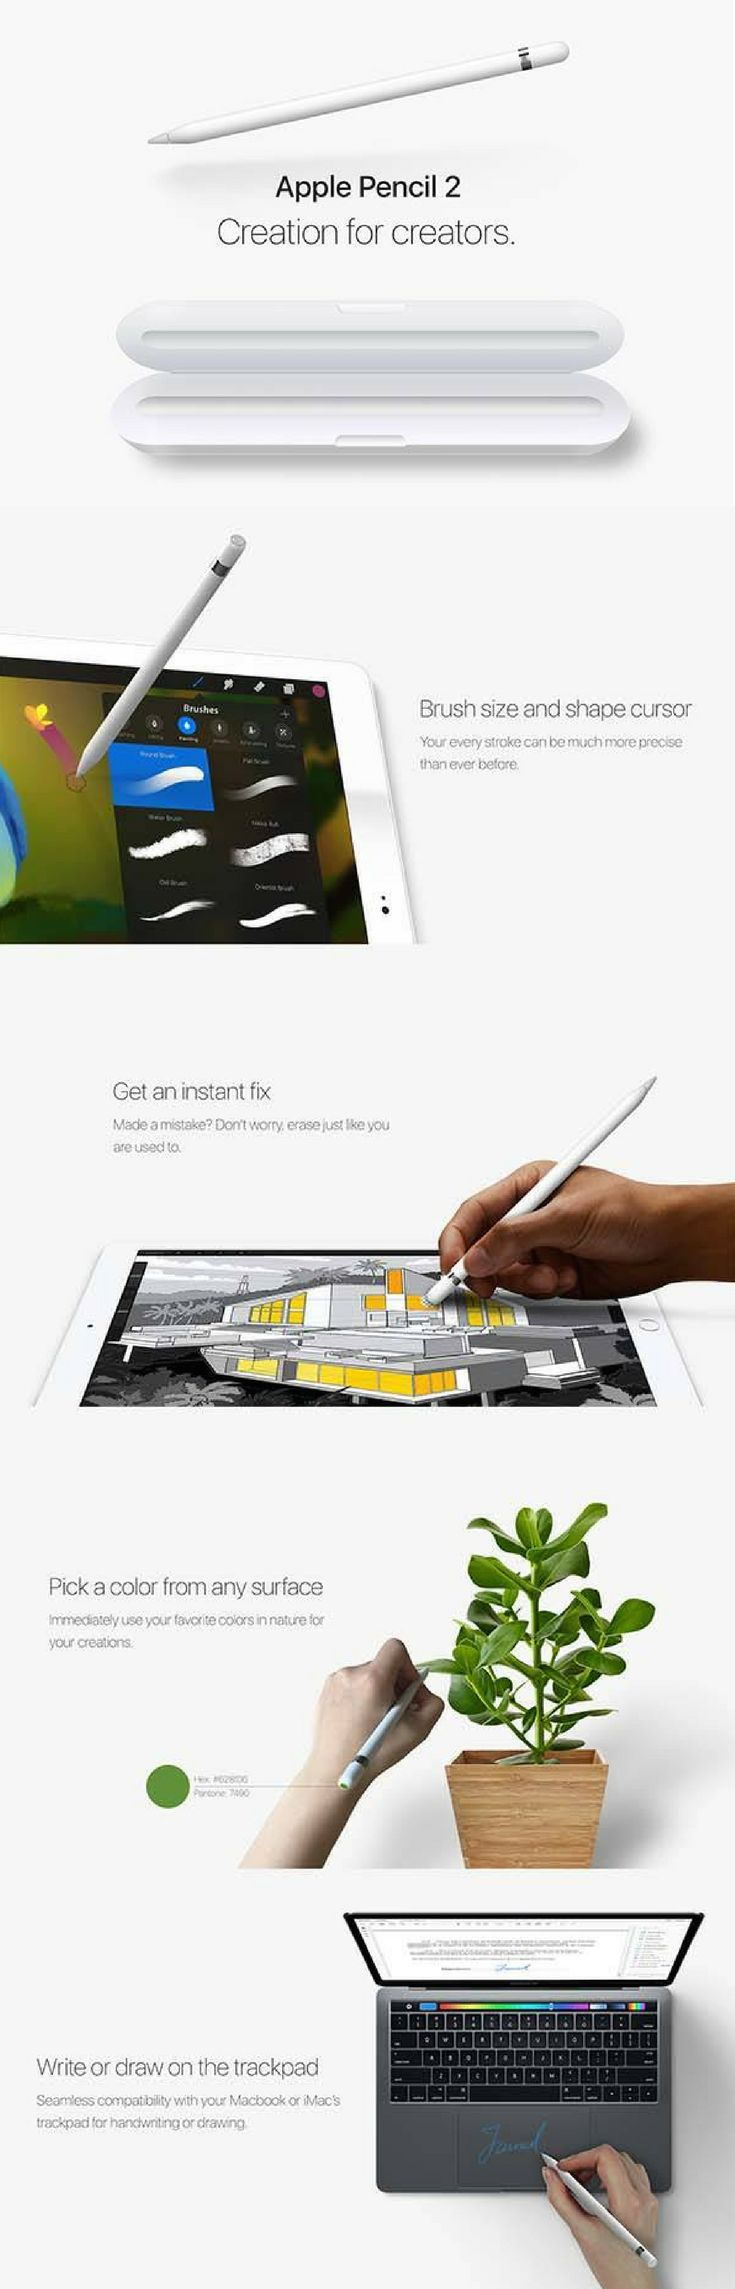 Game maker color picker - The Concept Apple Pencil 2 Boasts Integrated Color Picker Custom Charging Case And More